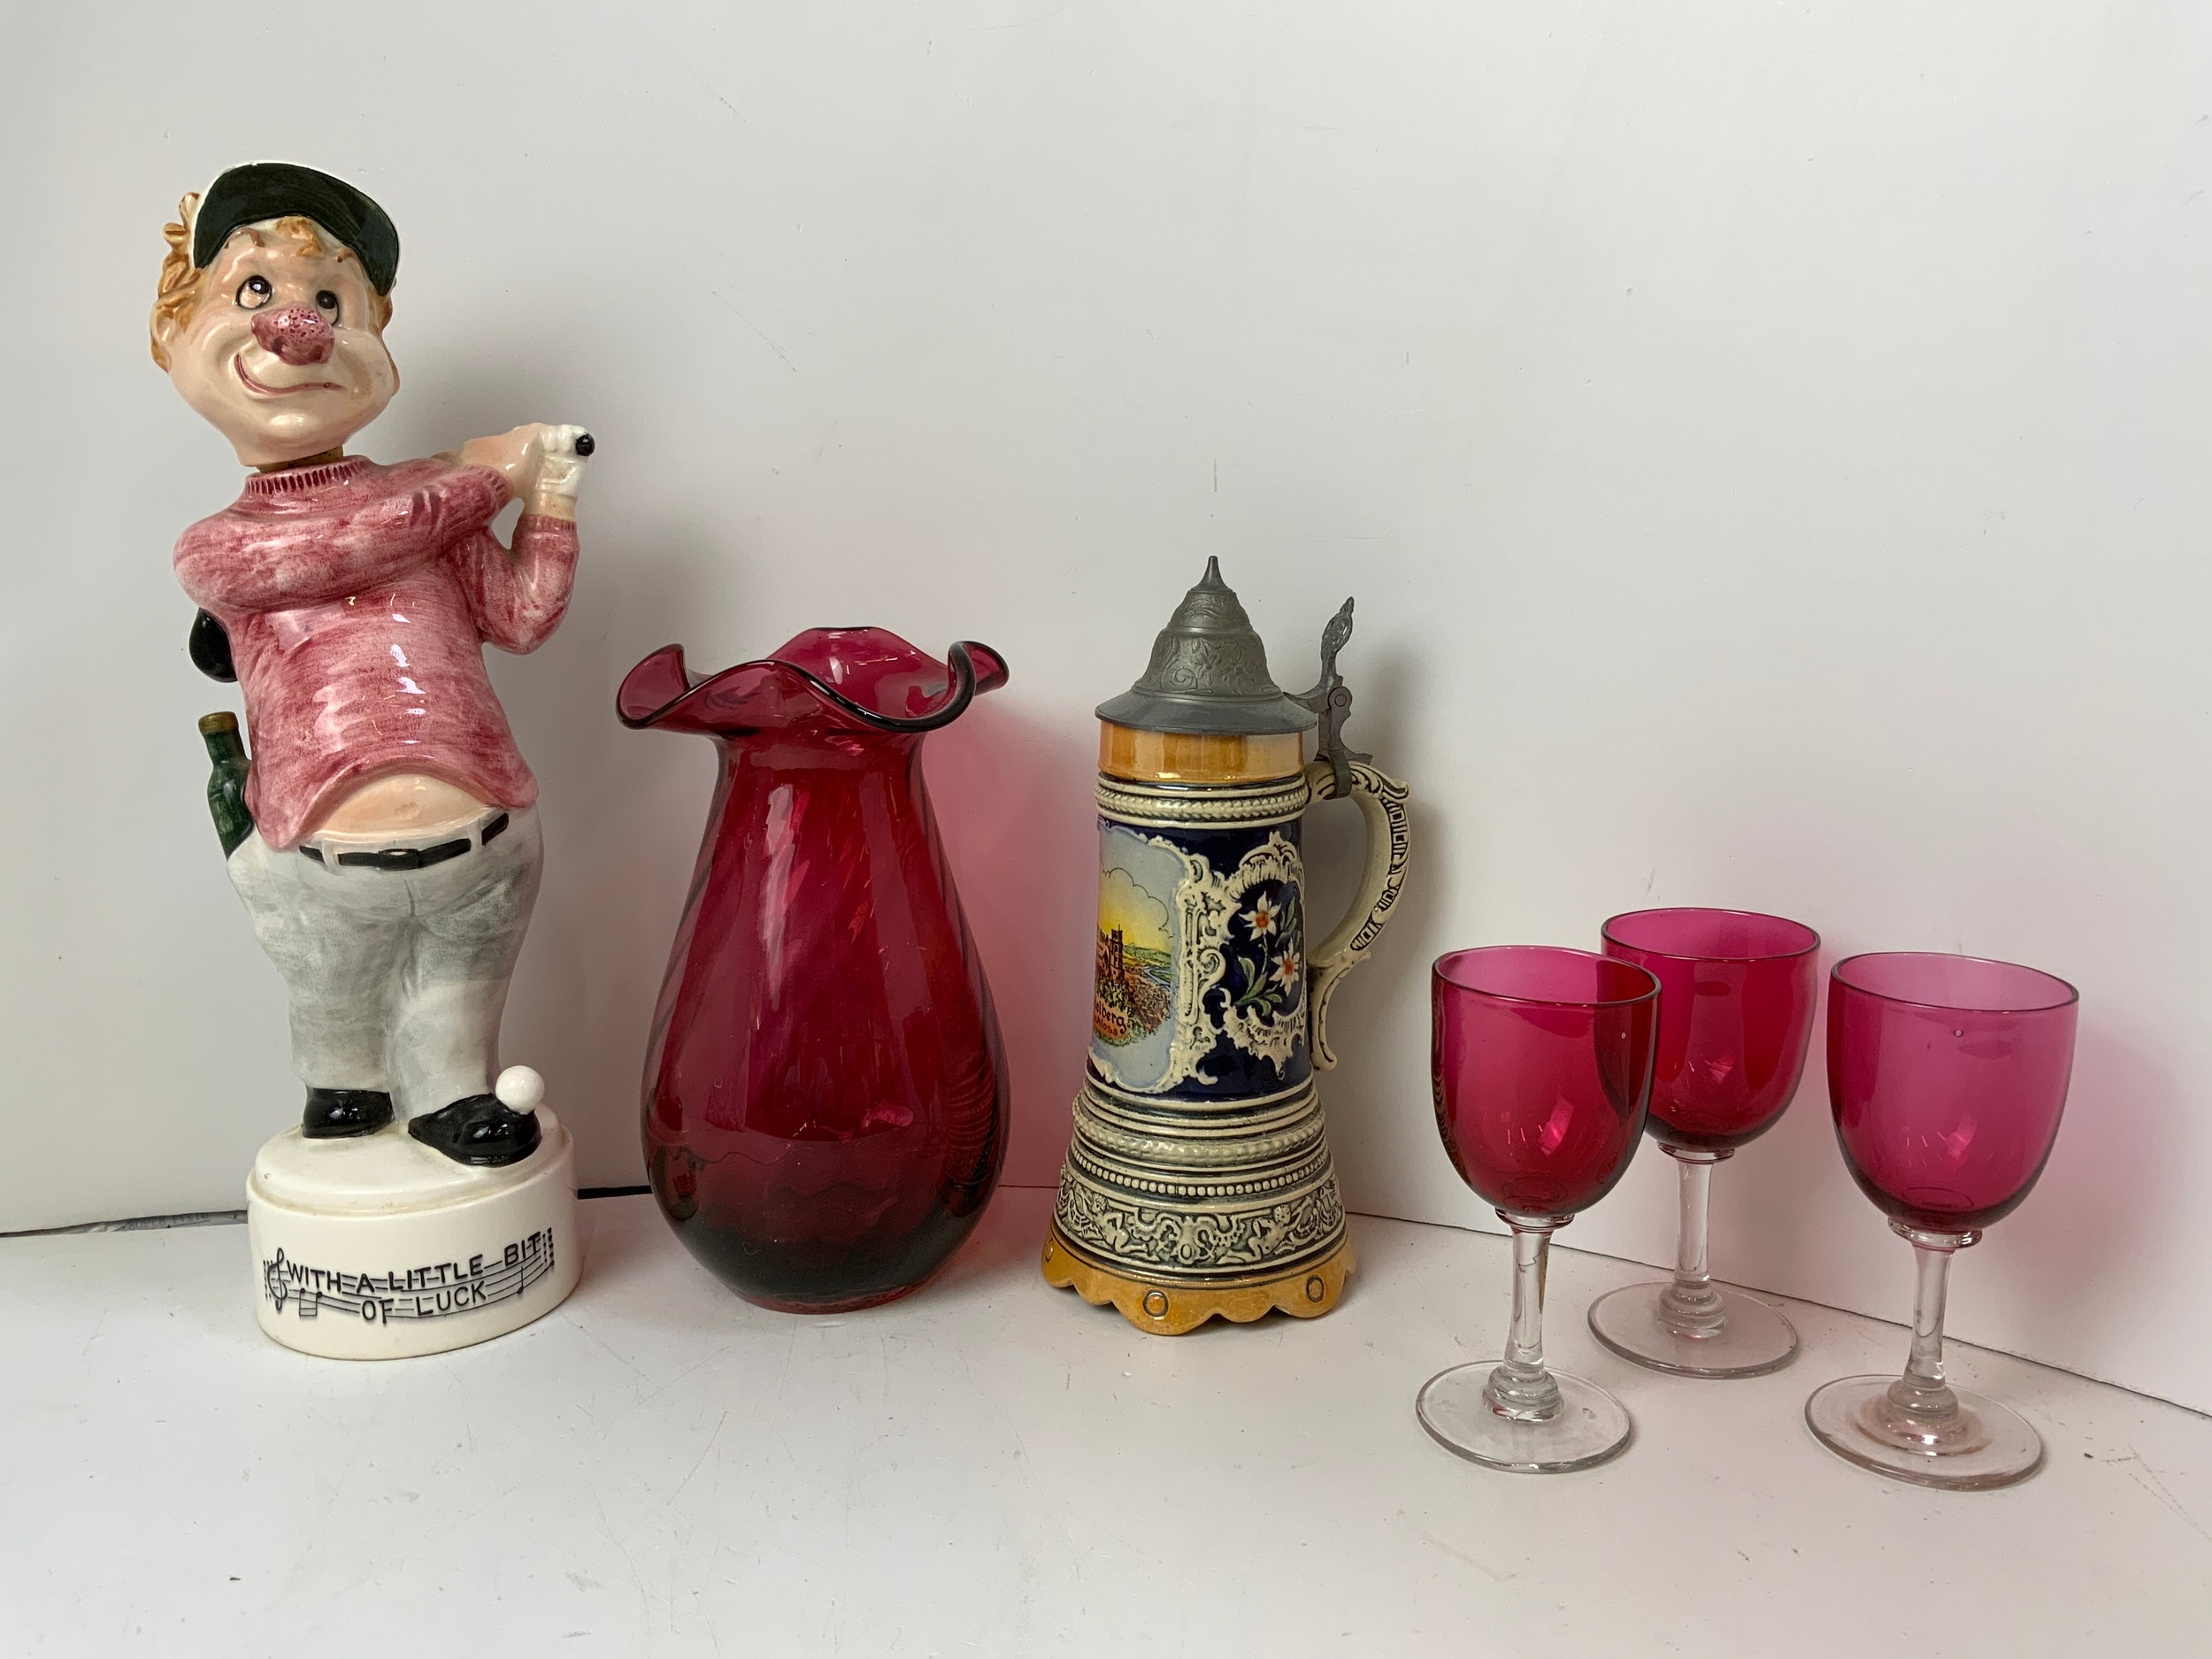 Red Glass Vase and Glasses, Stein and Novelty Musical Golf Decanter